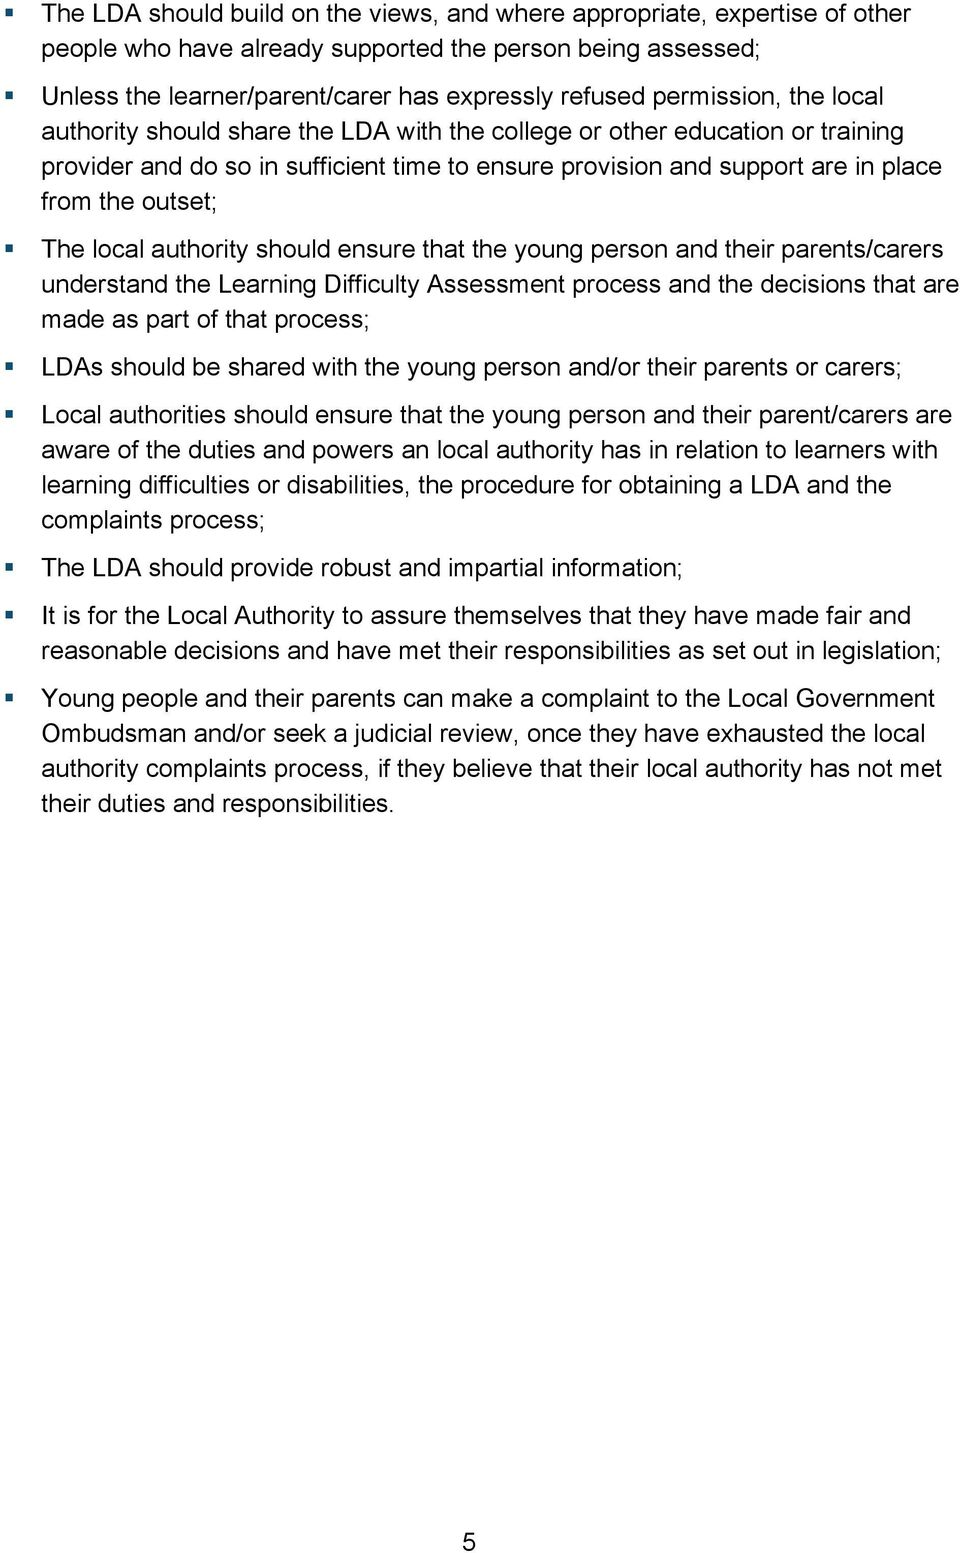 outset; The local authority should ensure that the young person and their parents/carers understand the Learning Difficulty Assessment process and the decisions that are made as part of that process;